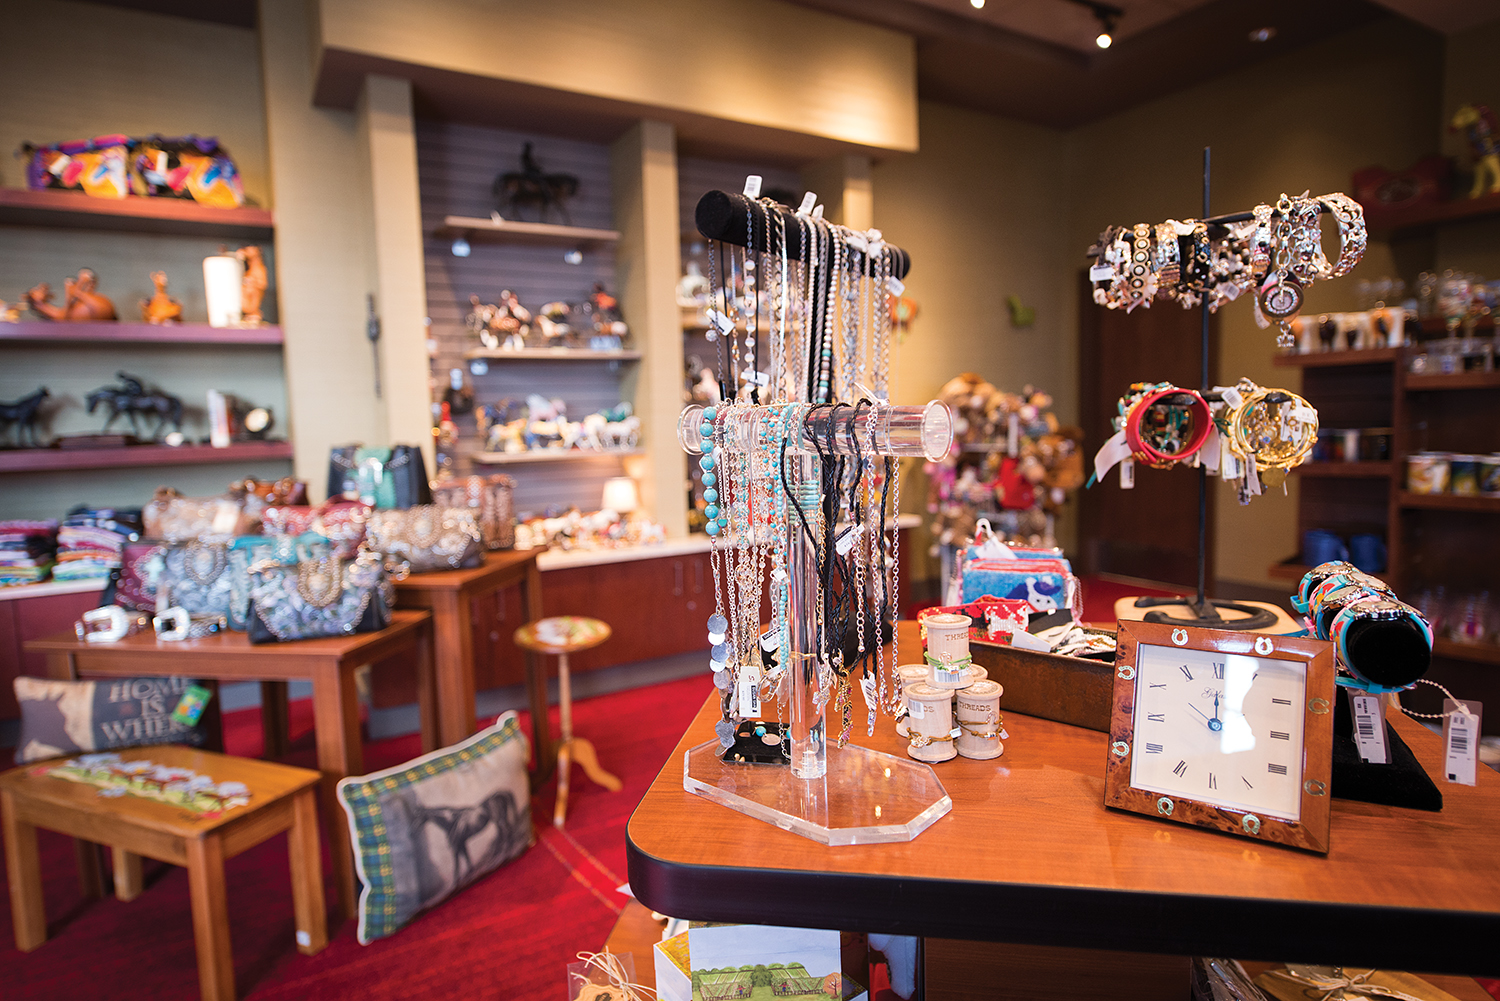 The Winning Court Gift Shop carries a wide variety of gift items, many of which are equine inspired.